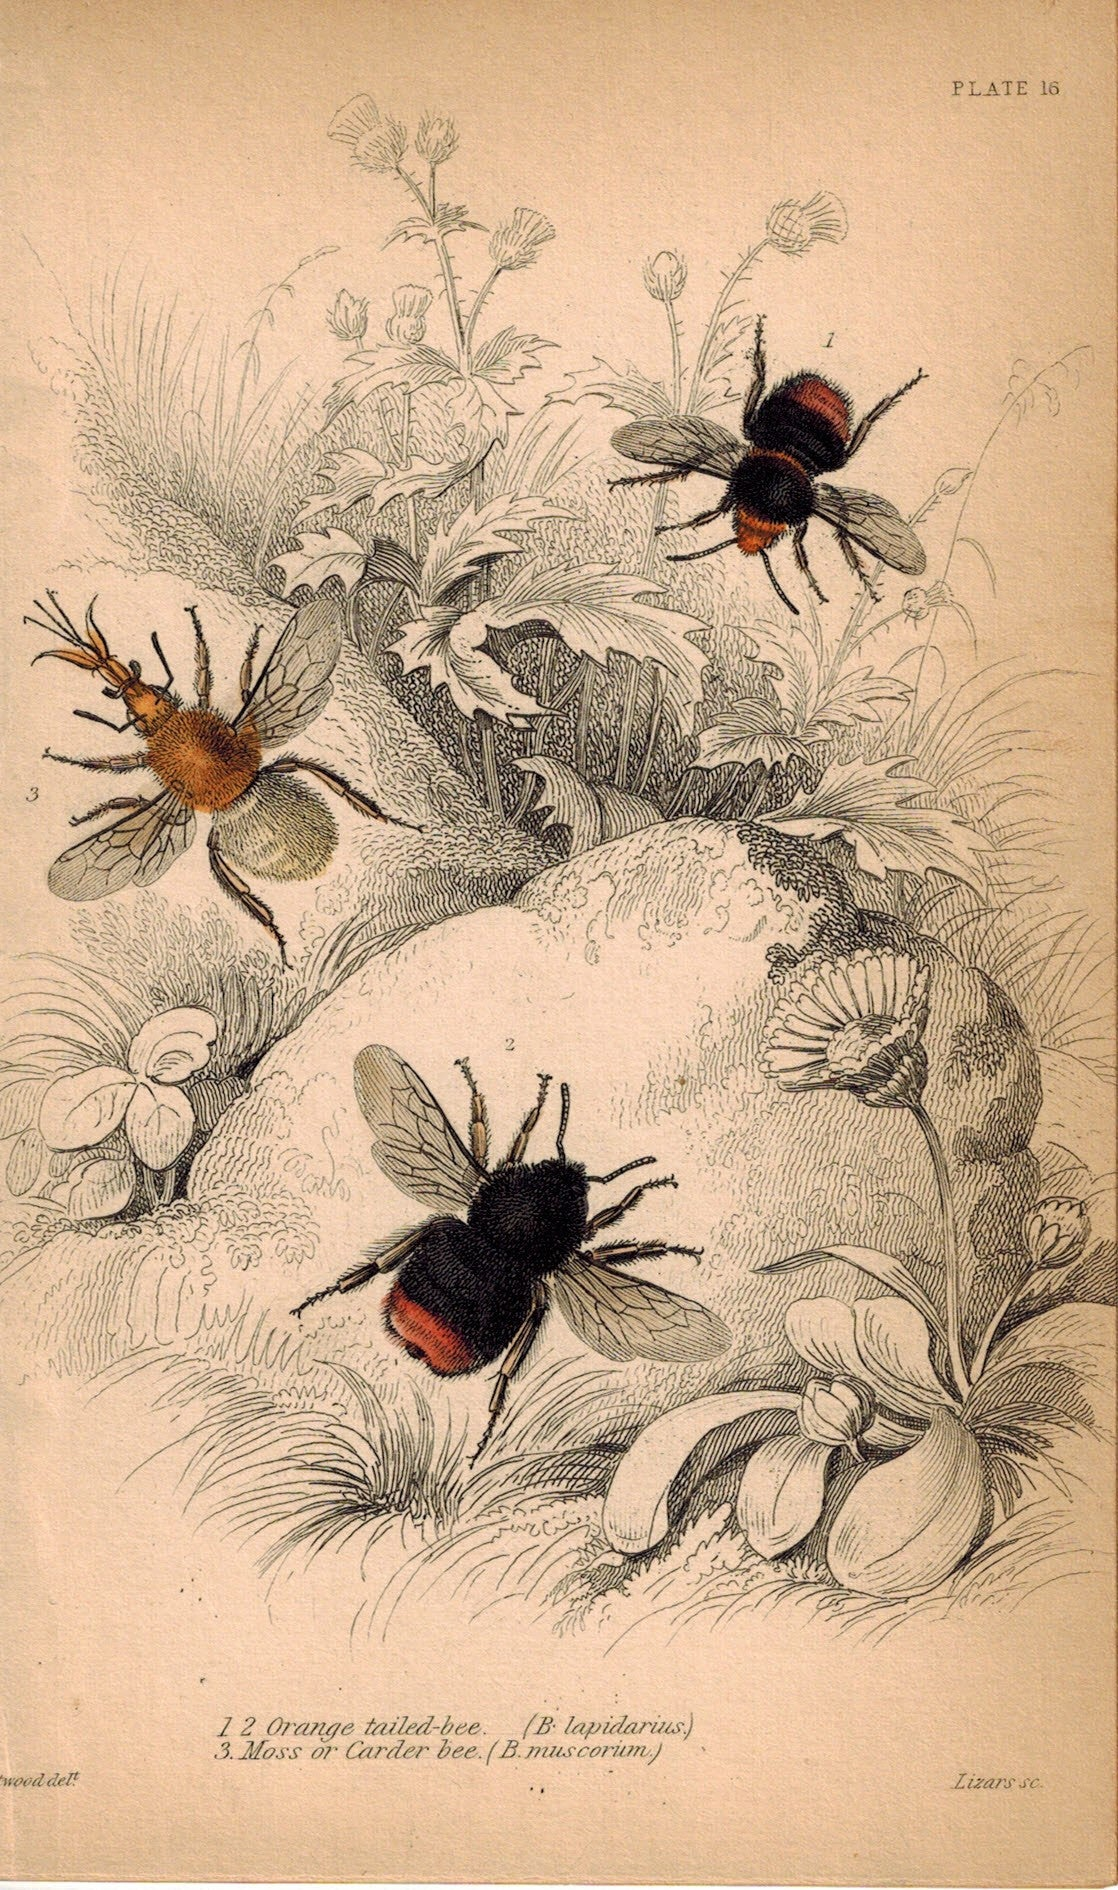 Orange Tailed Bee & Moss Carder Bee 1840 Original Hand Colored Engraving Print